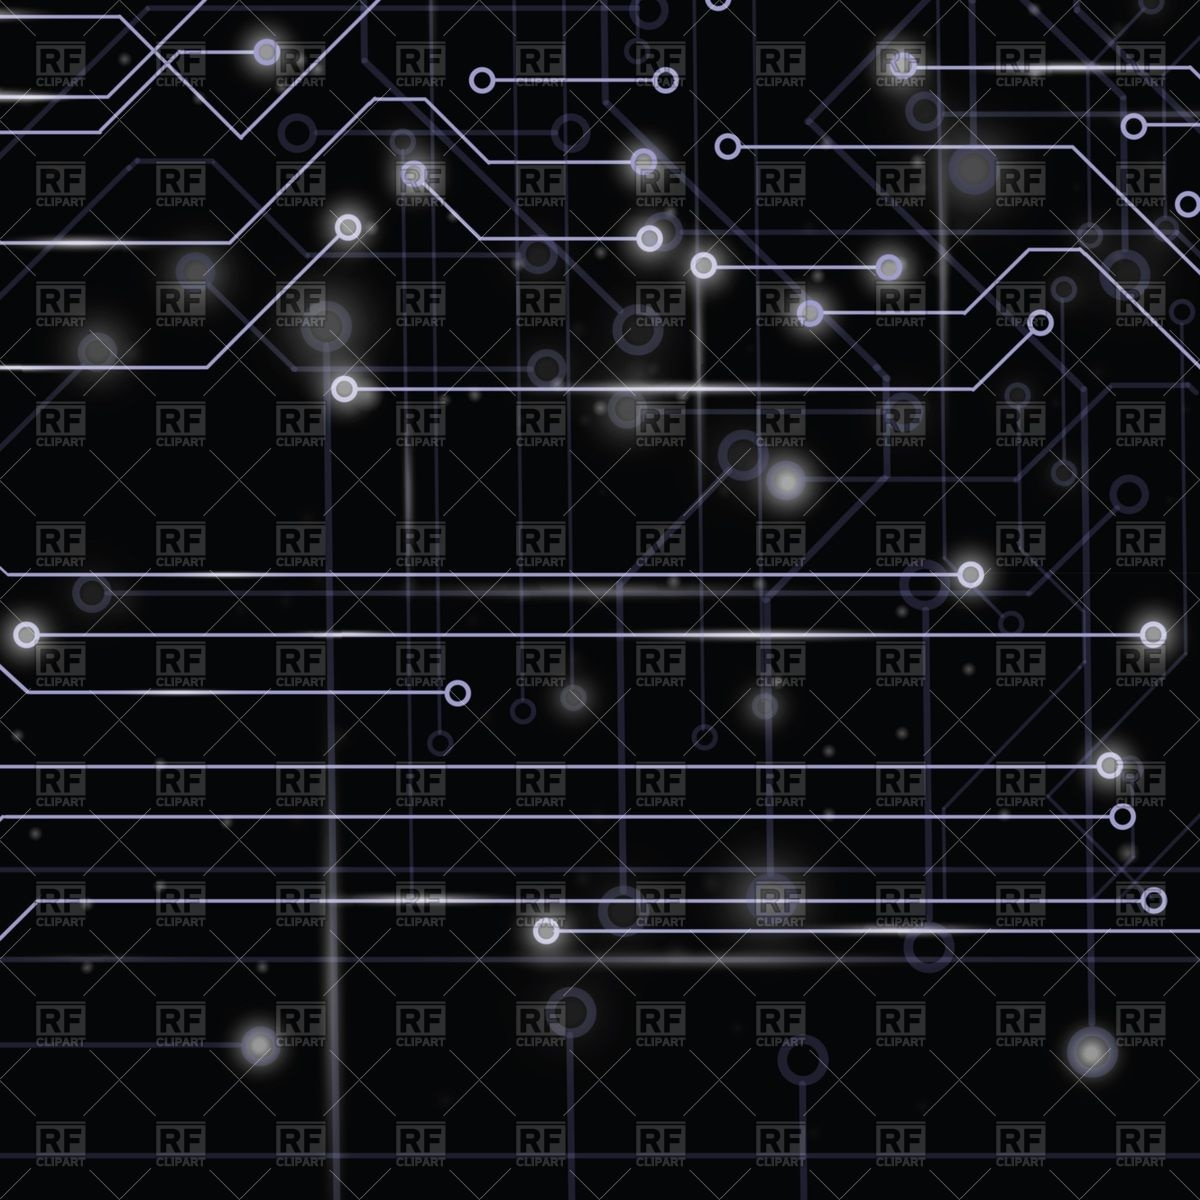 Technology circuit board on dark background Vector Image #63354.